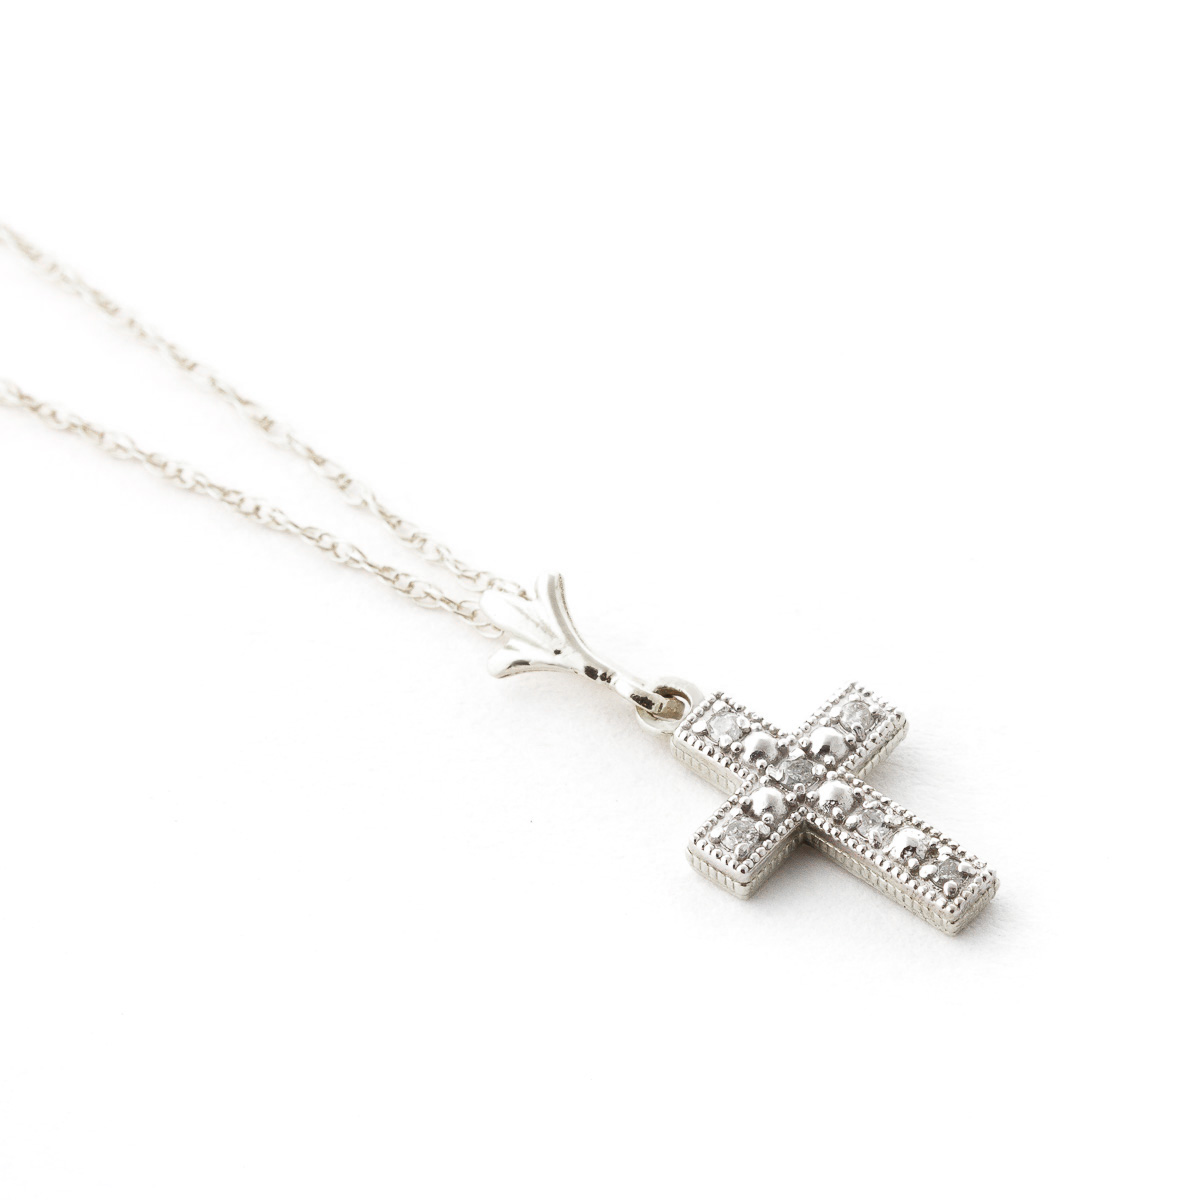 Diamond Cross Pendant Necklace in 9ct White Gold